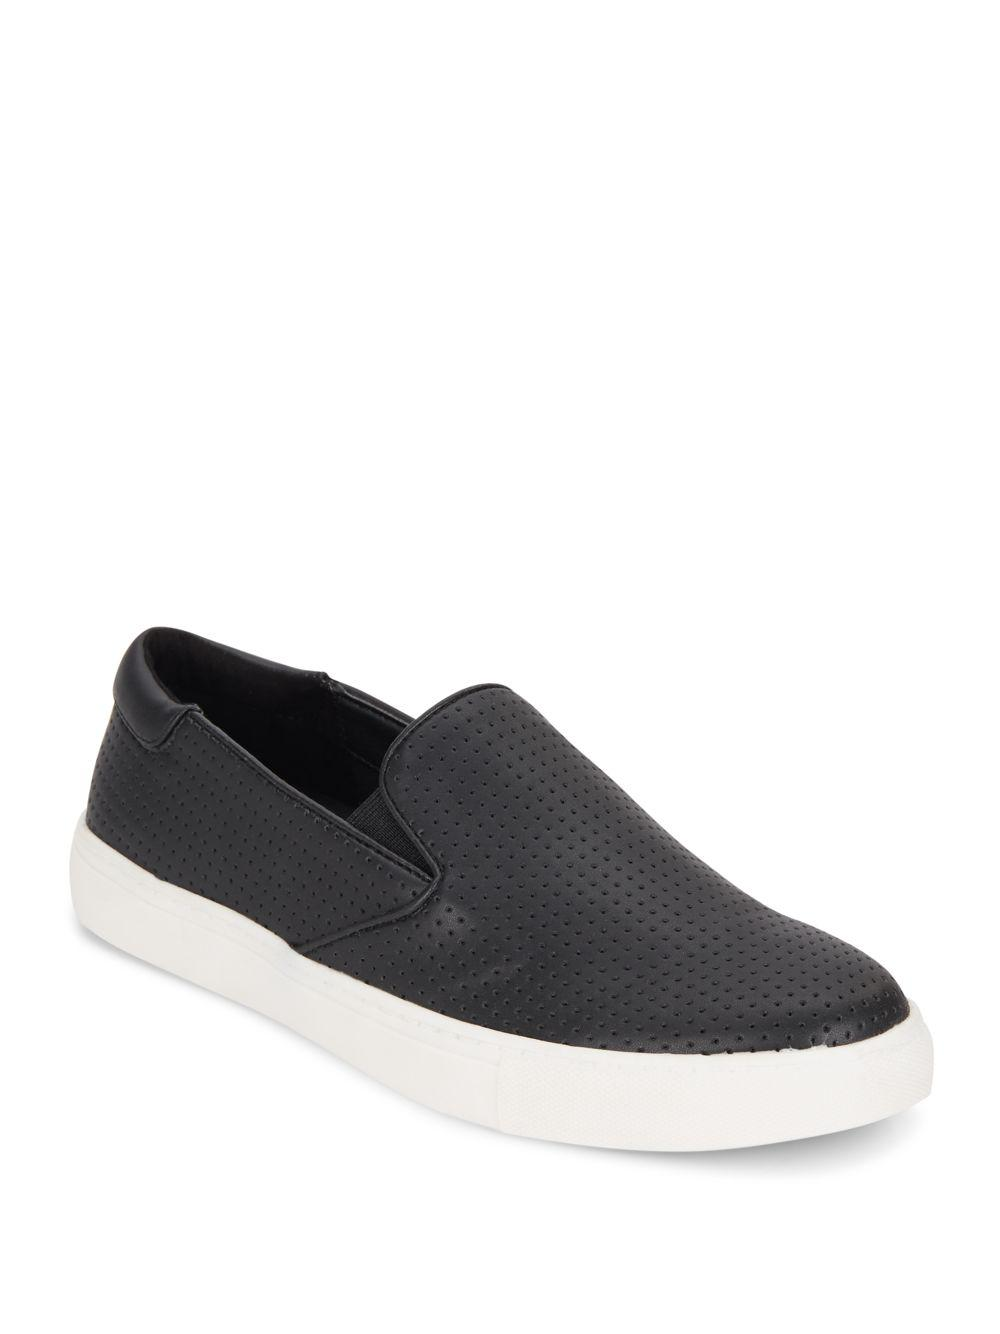 kenneth cole reaction salt king perforated slip on